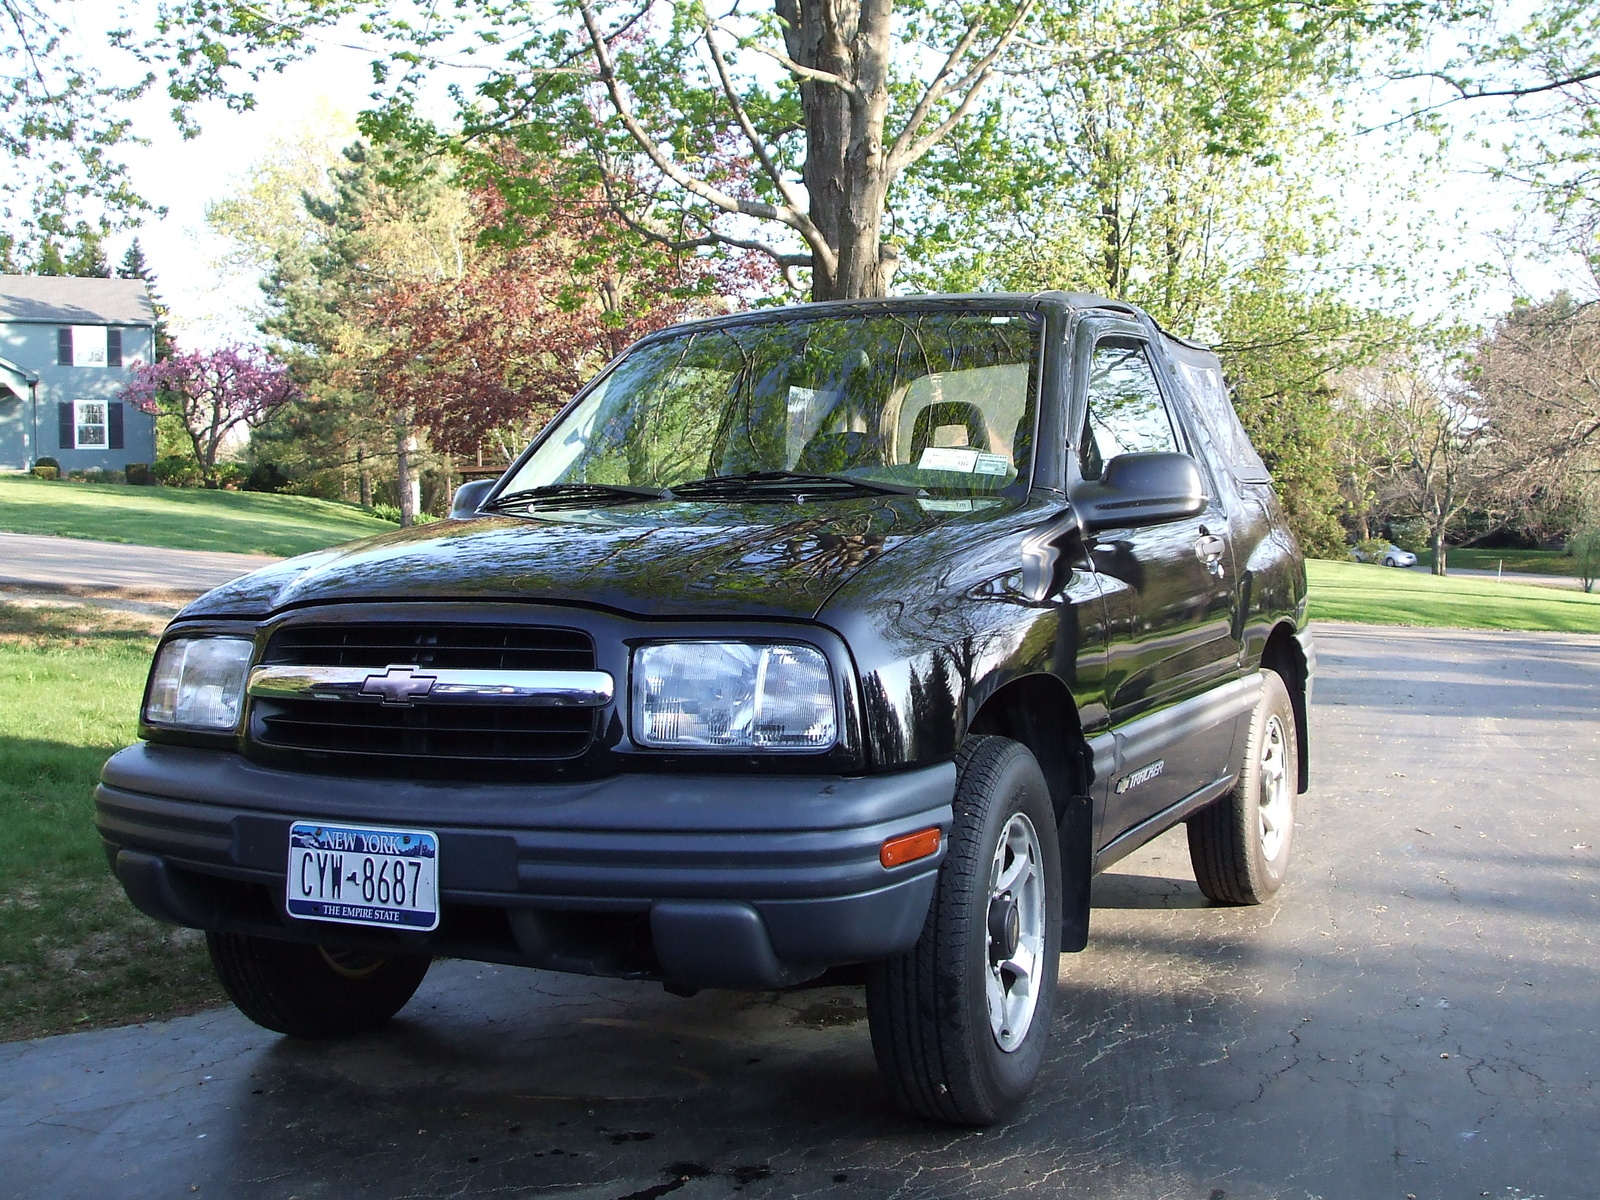 Picture of 2000 Chevrolet Tracker Base 4WD Convertible, exterior